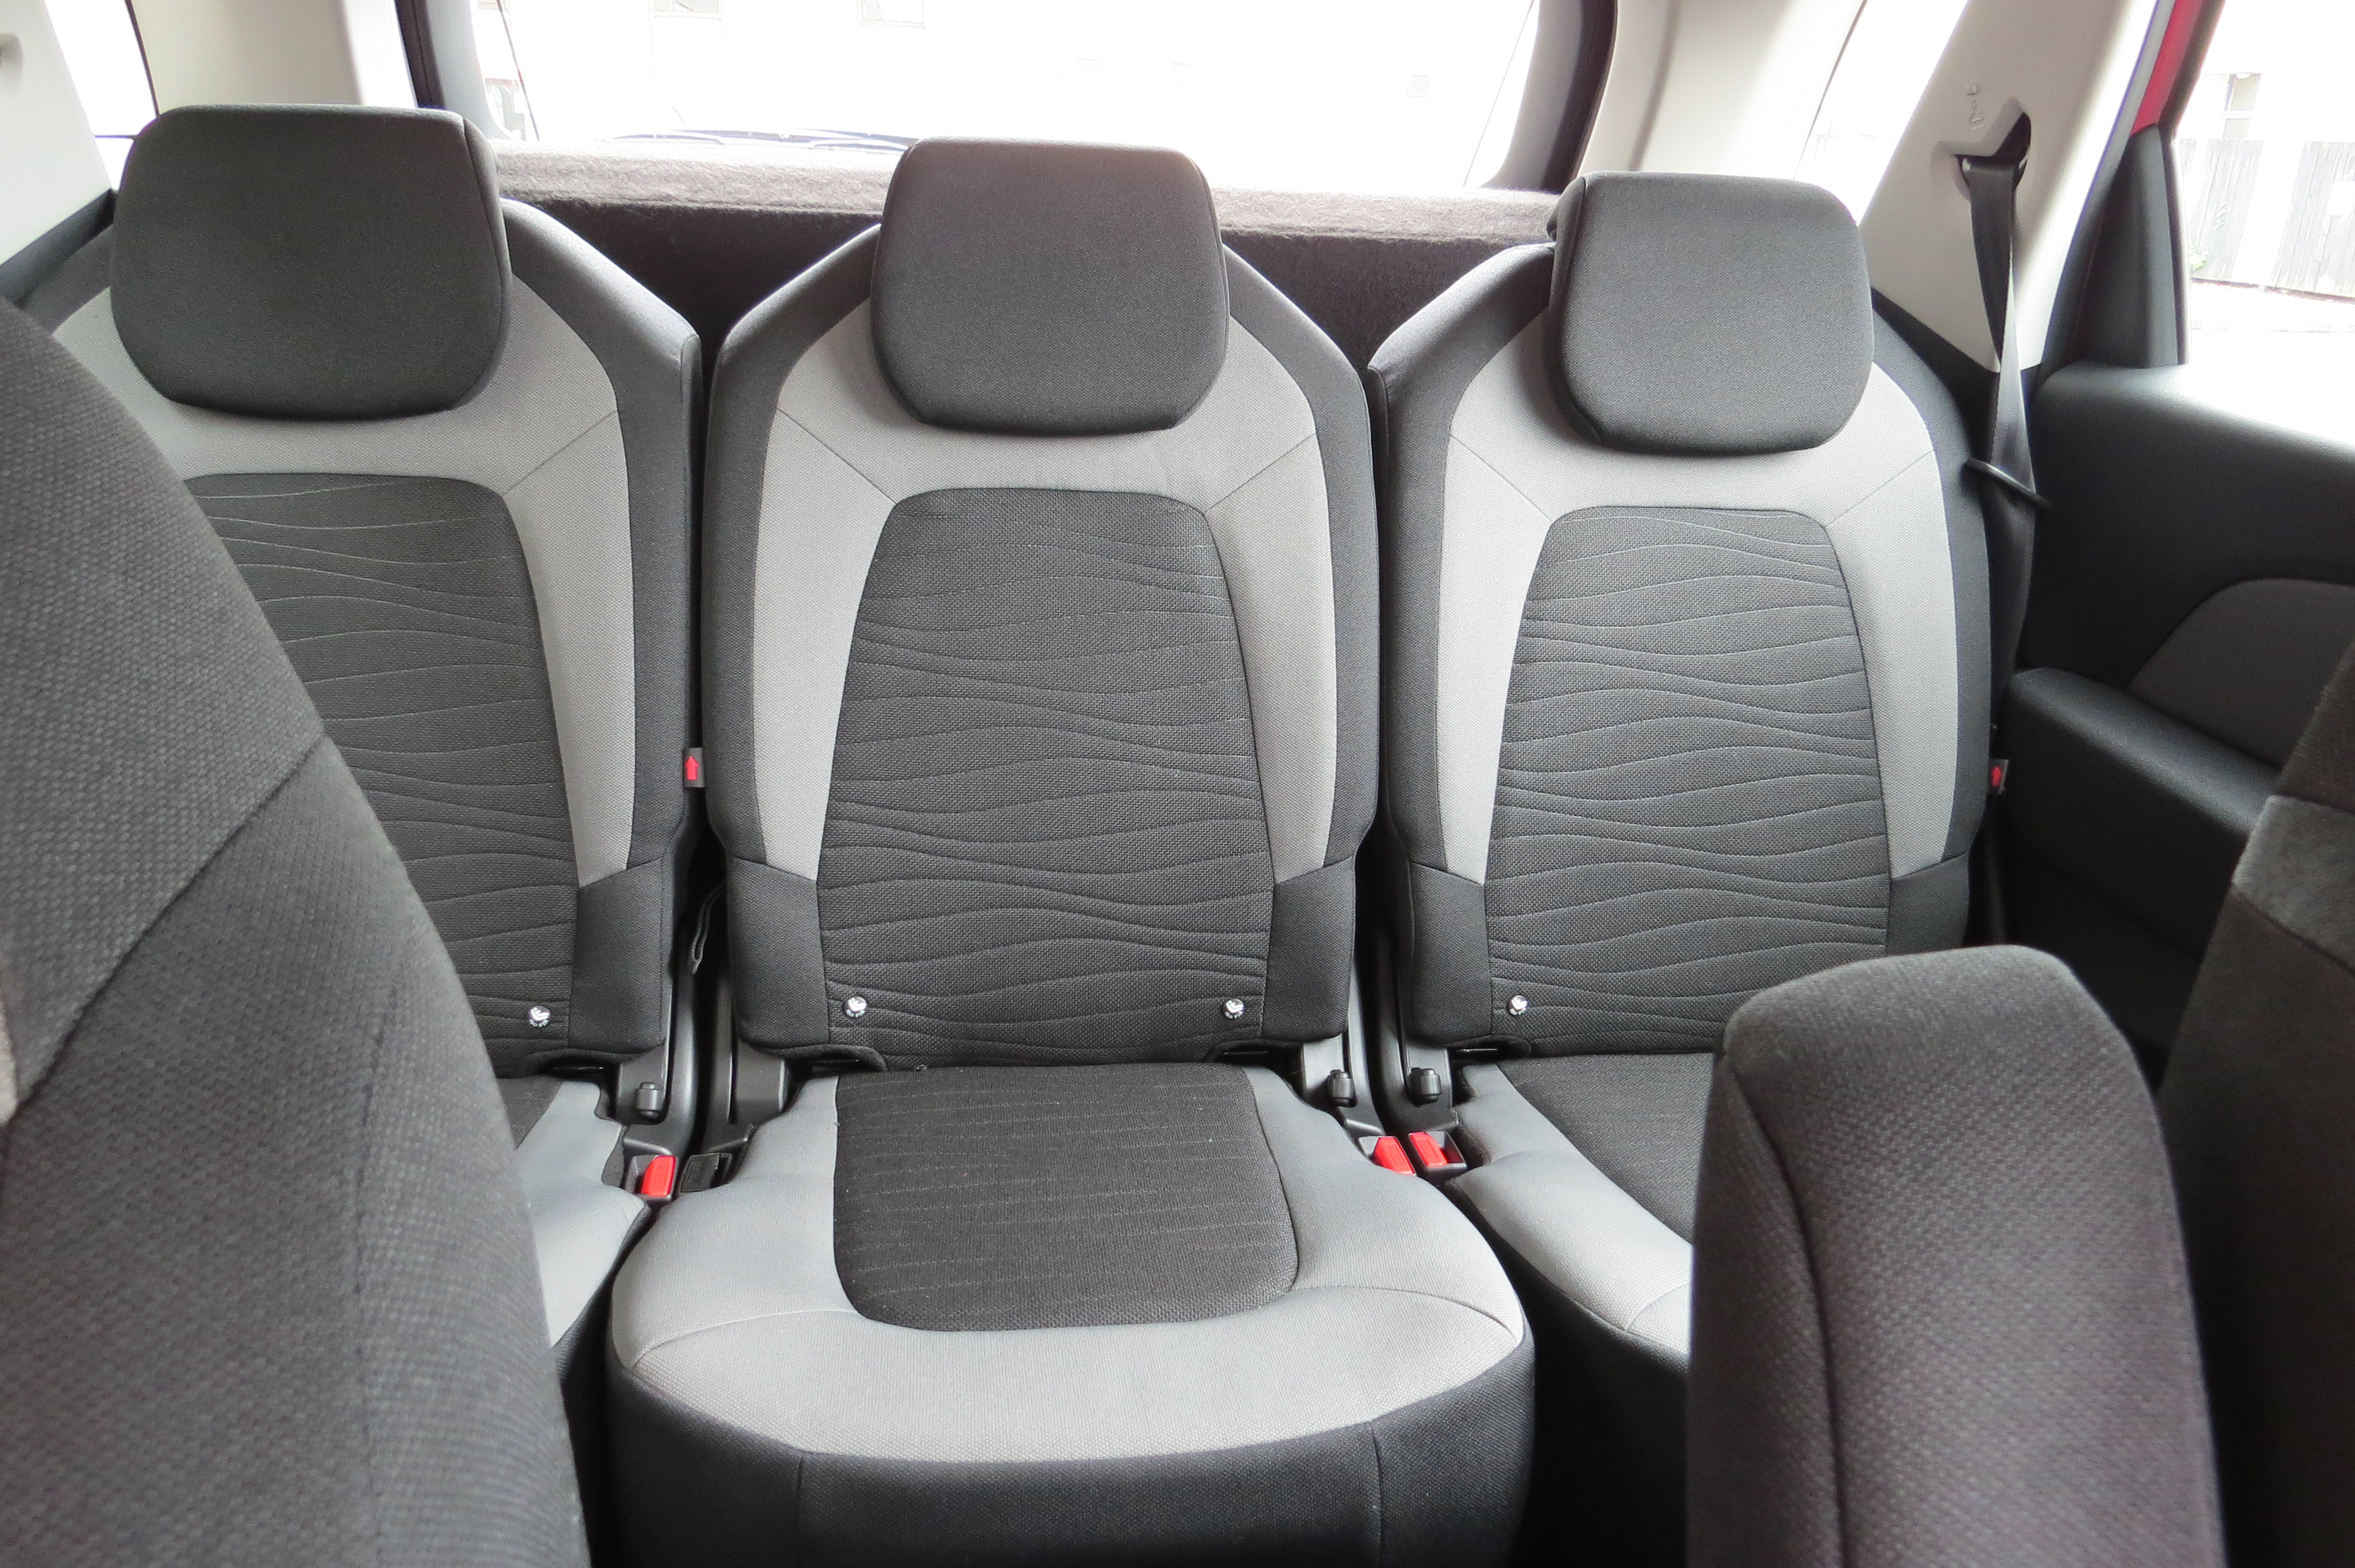 Here You Can See Three Proper Seats Each With Its Own Isofix And Head Rest A Flat Seat